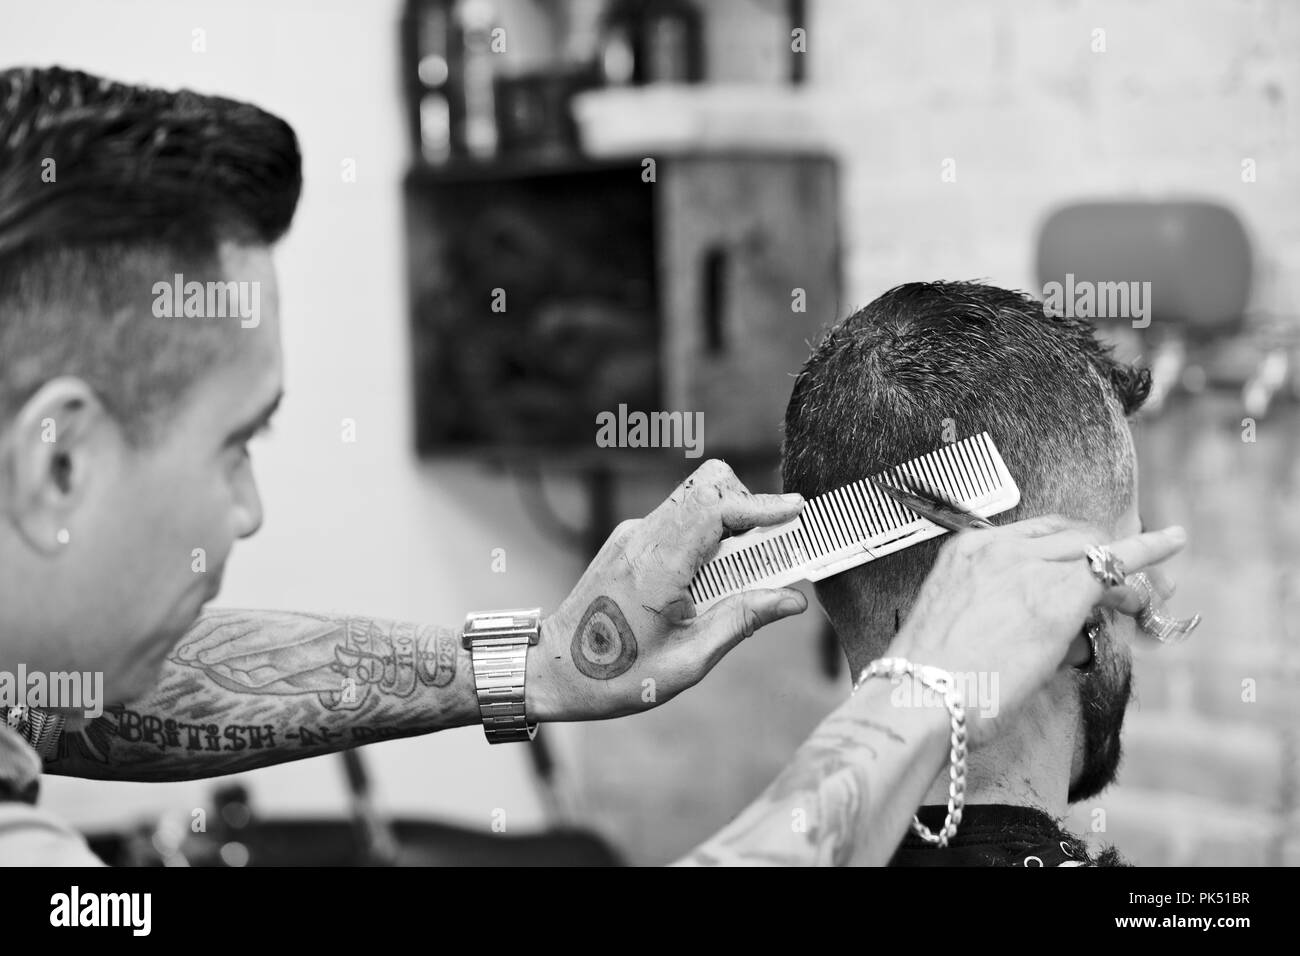 Barber Shop, blade and scissor work - Stock Image